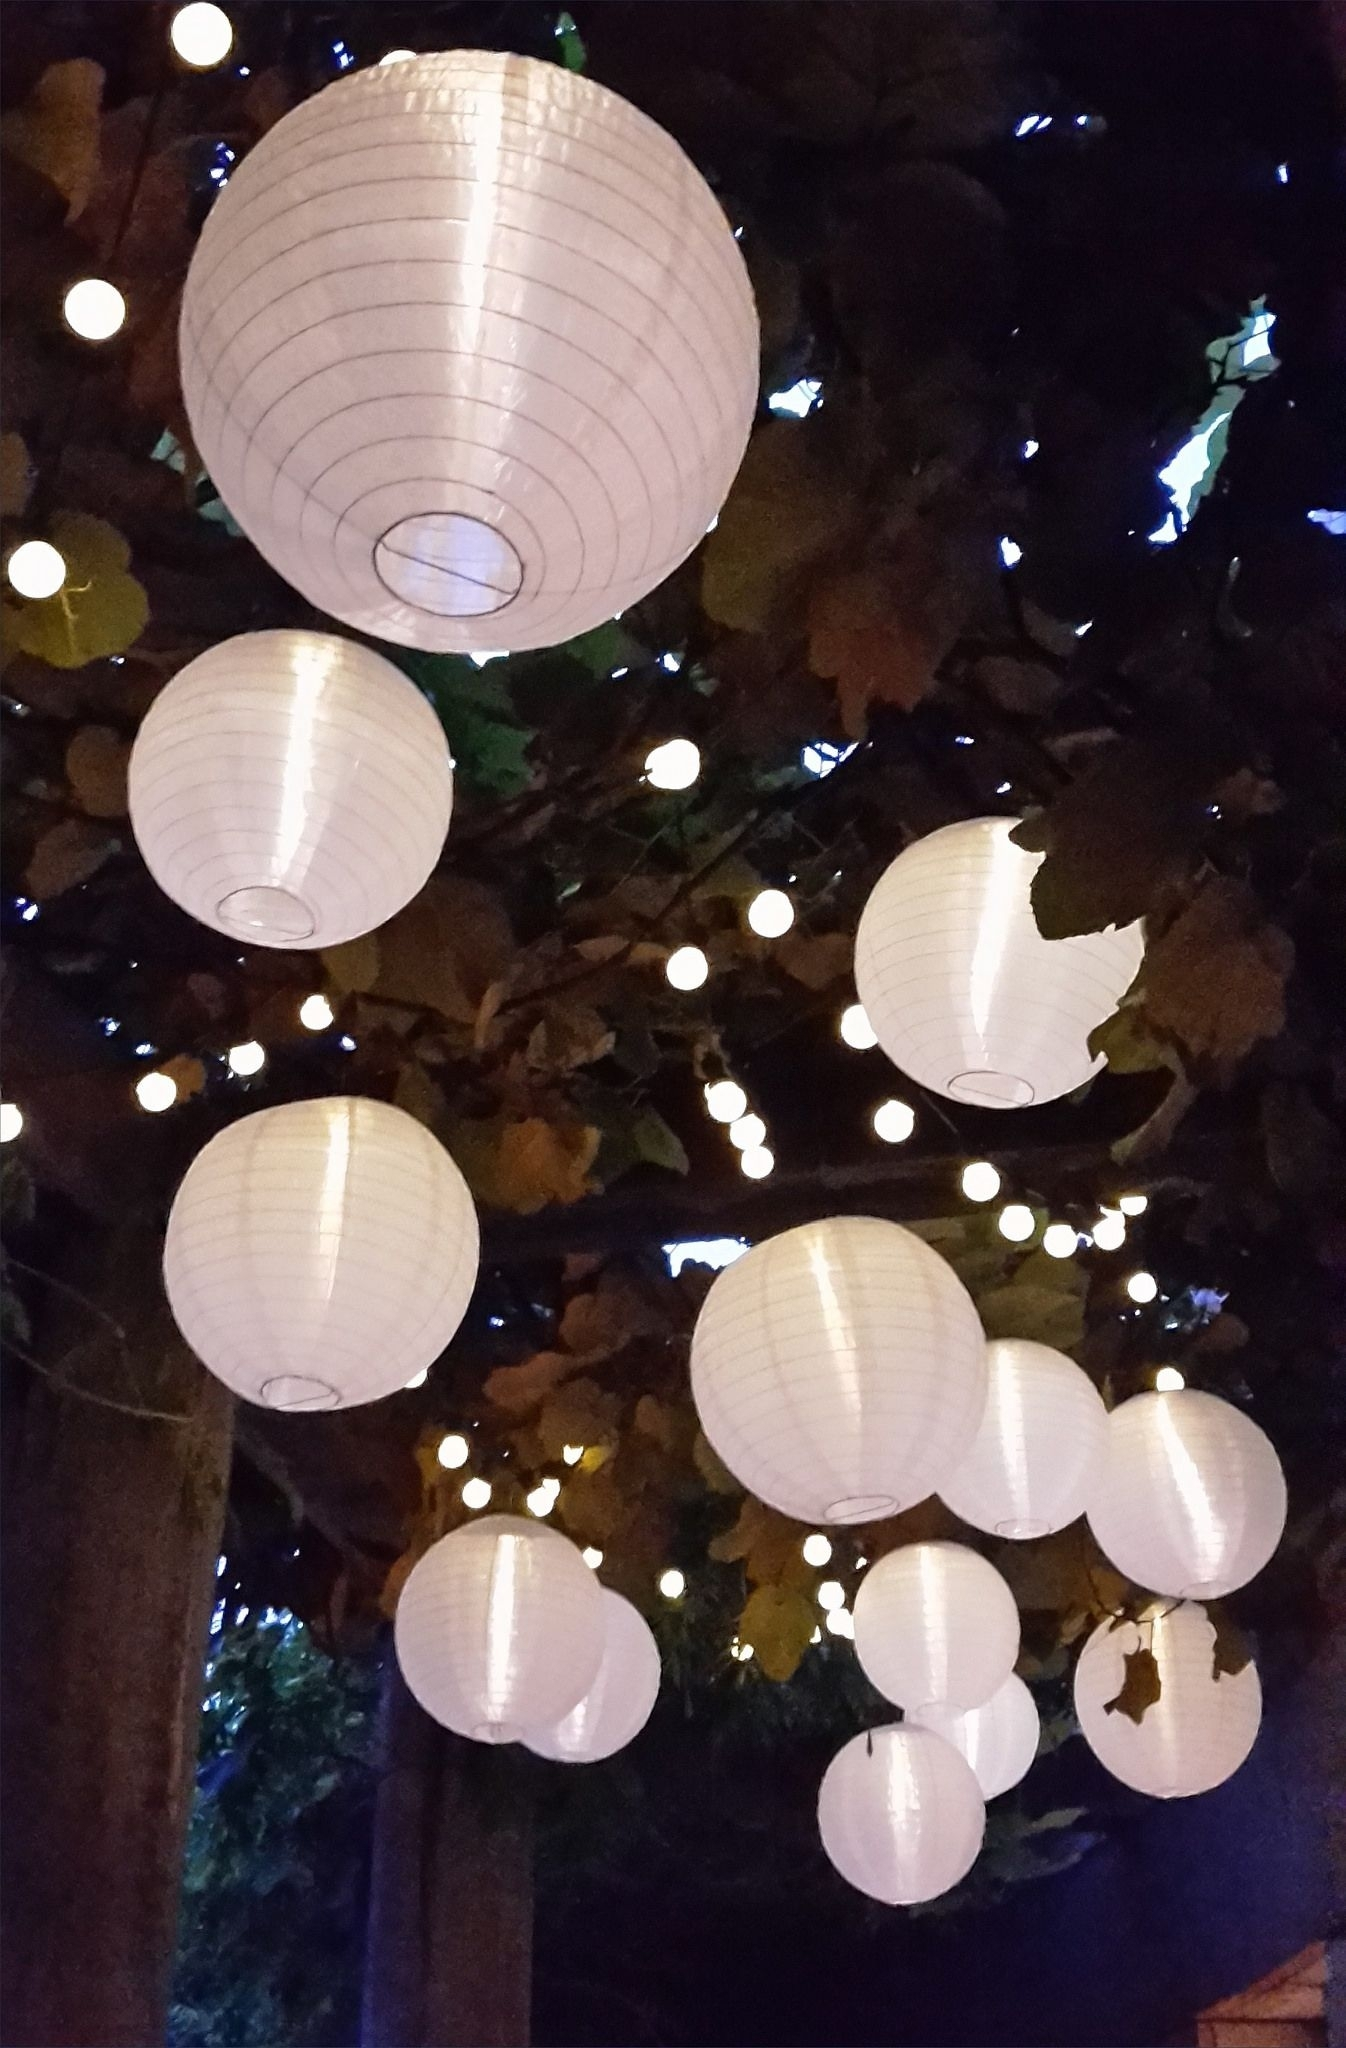 Nylon Solar Lanterns And Solar String Lights Are Perfect For Outdoor Regarding Outdoor Hanging Nylon Lanterns (View 14 of 15)